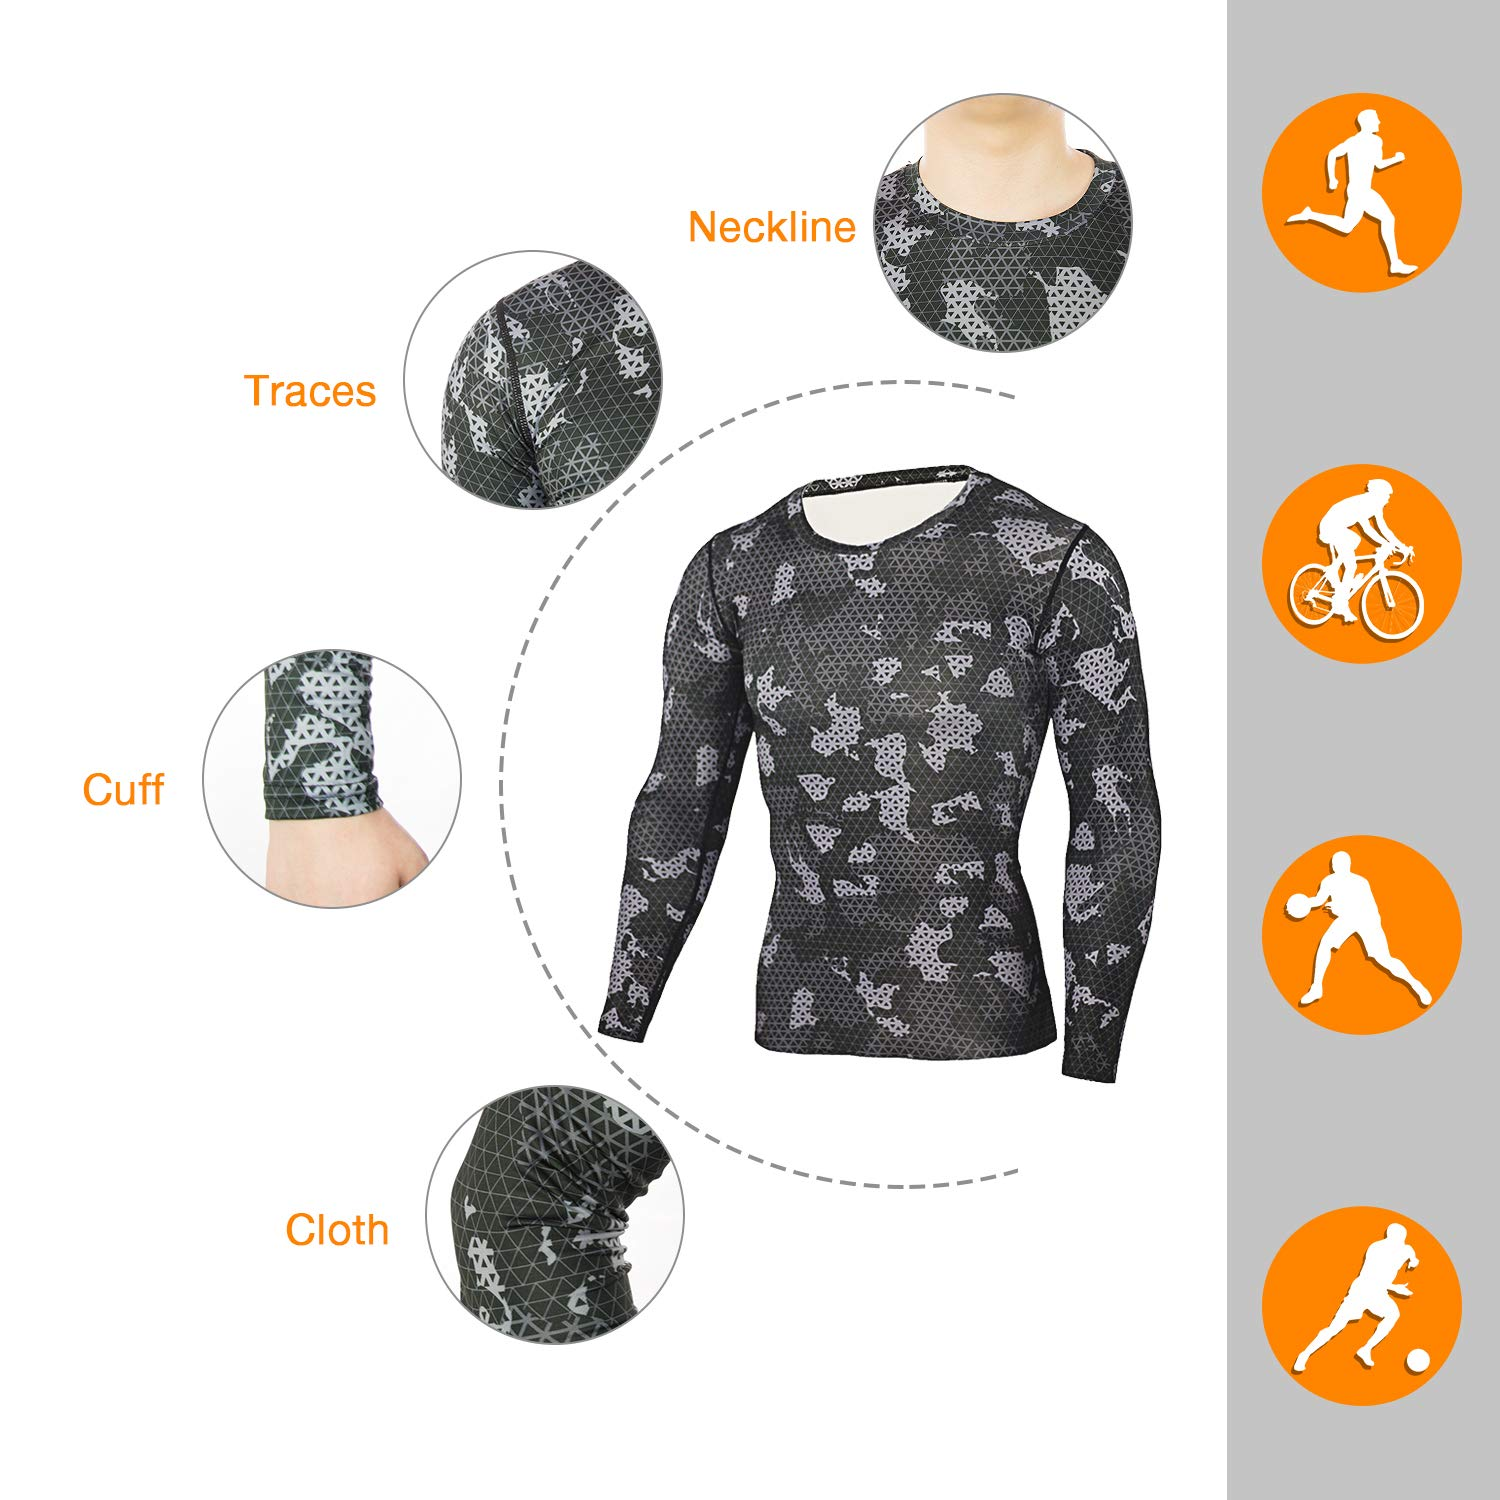 iCKER Base Layer Top Mens /& Boys Wicking Quick Dry Lightweight Sport Compression Tee Long Sleeve Shirt